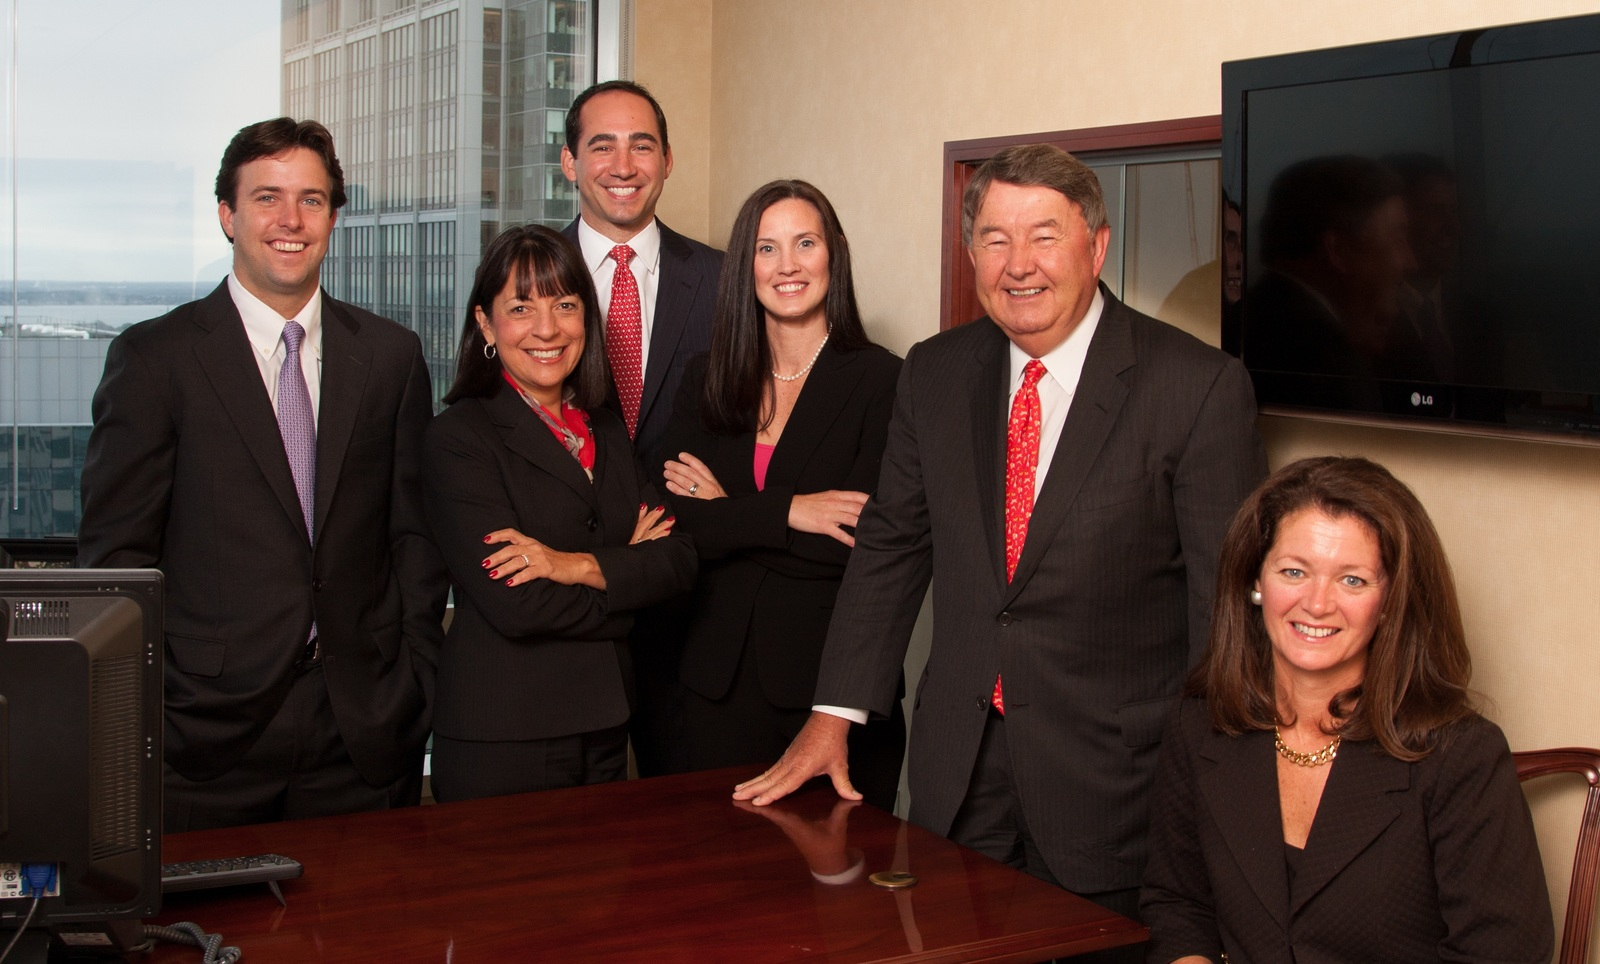 Photo of The Connolly Principe Group - Morgan Stanley